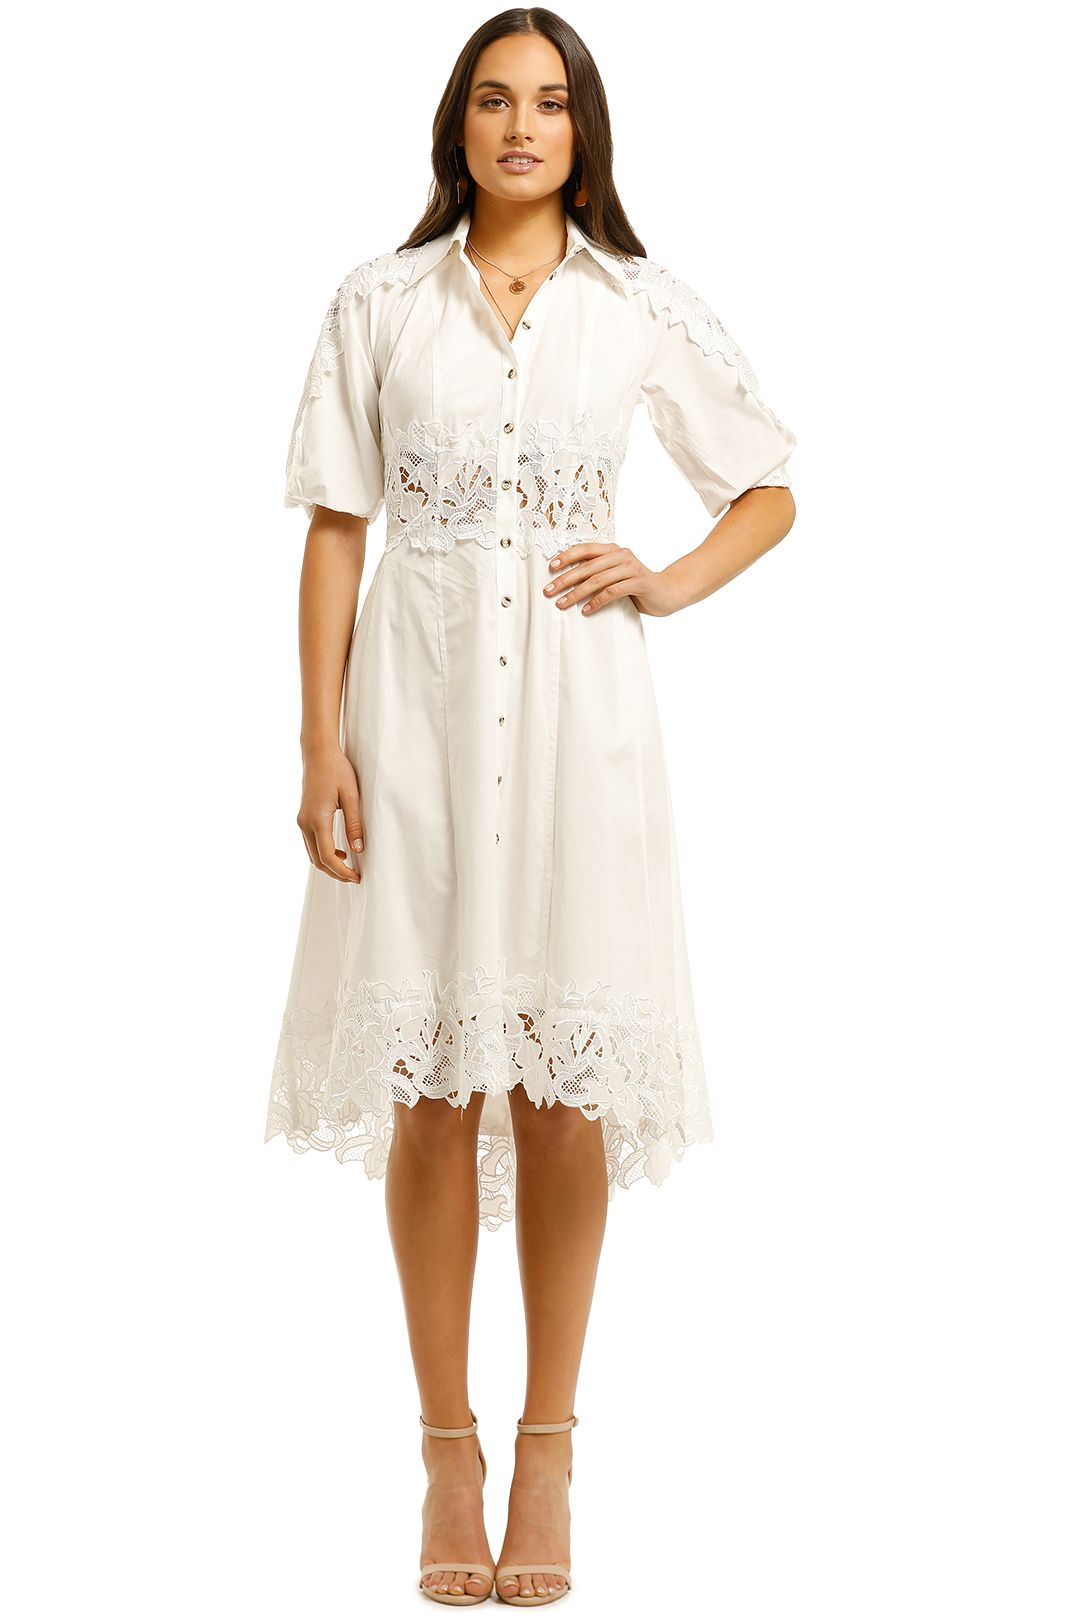 Moss-and-Spy-Evetta-Shirt-Dress-White-Front